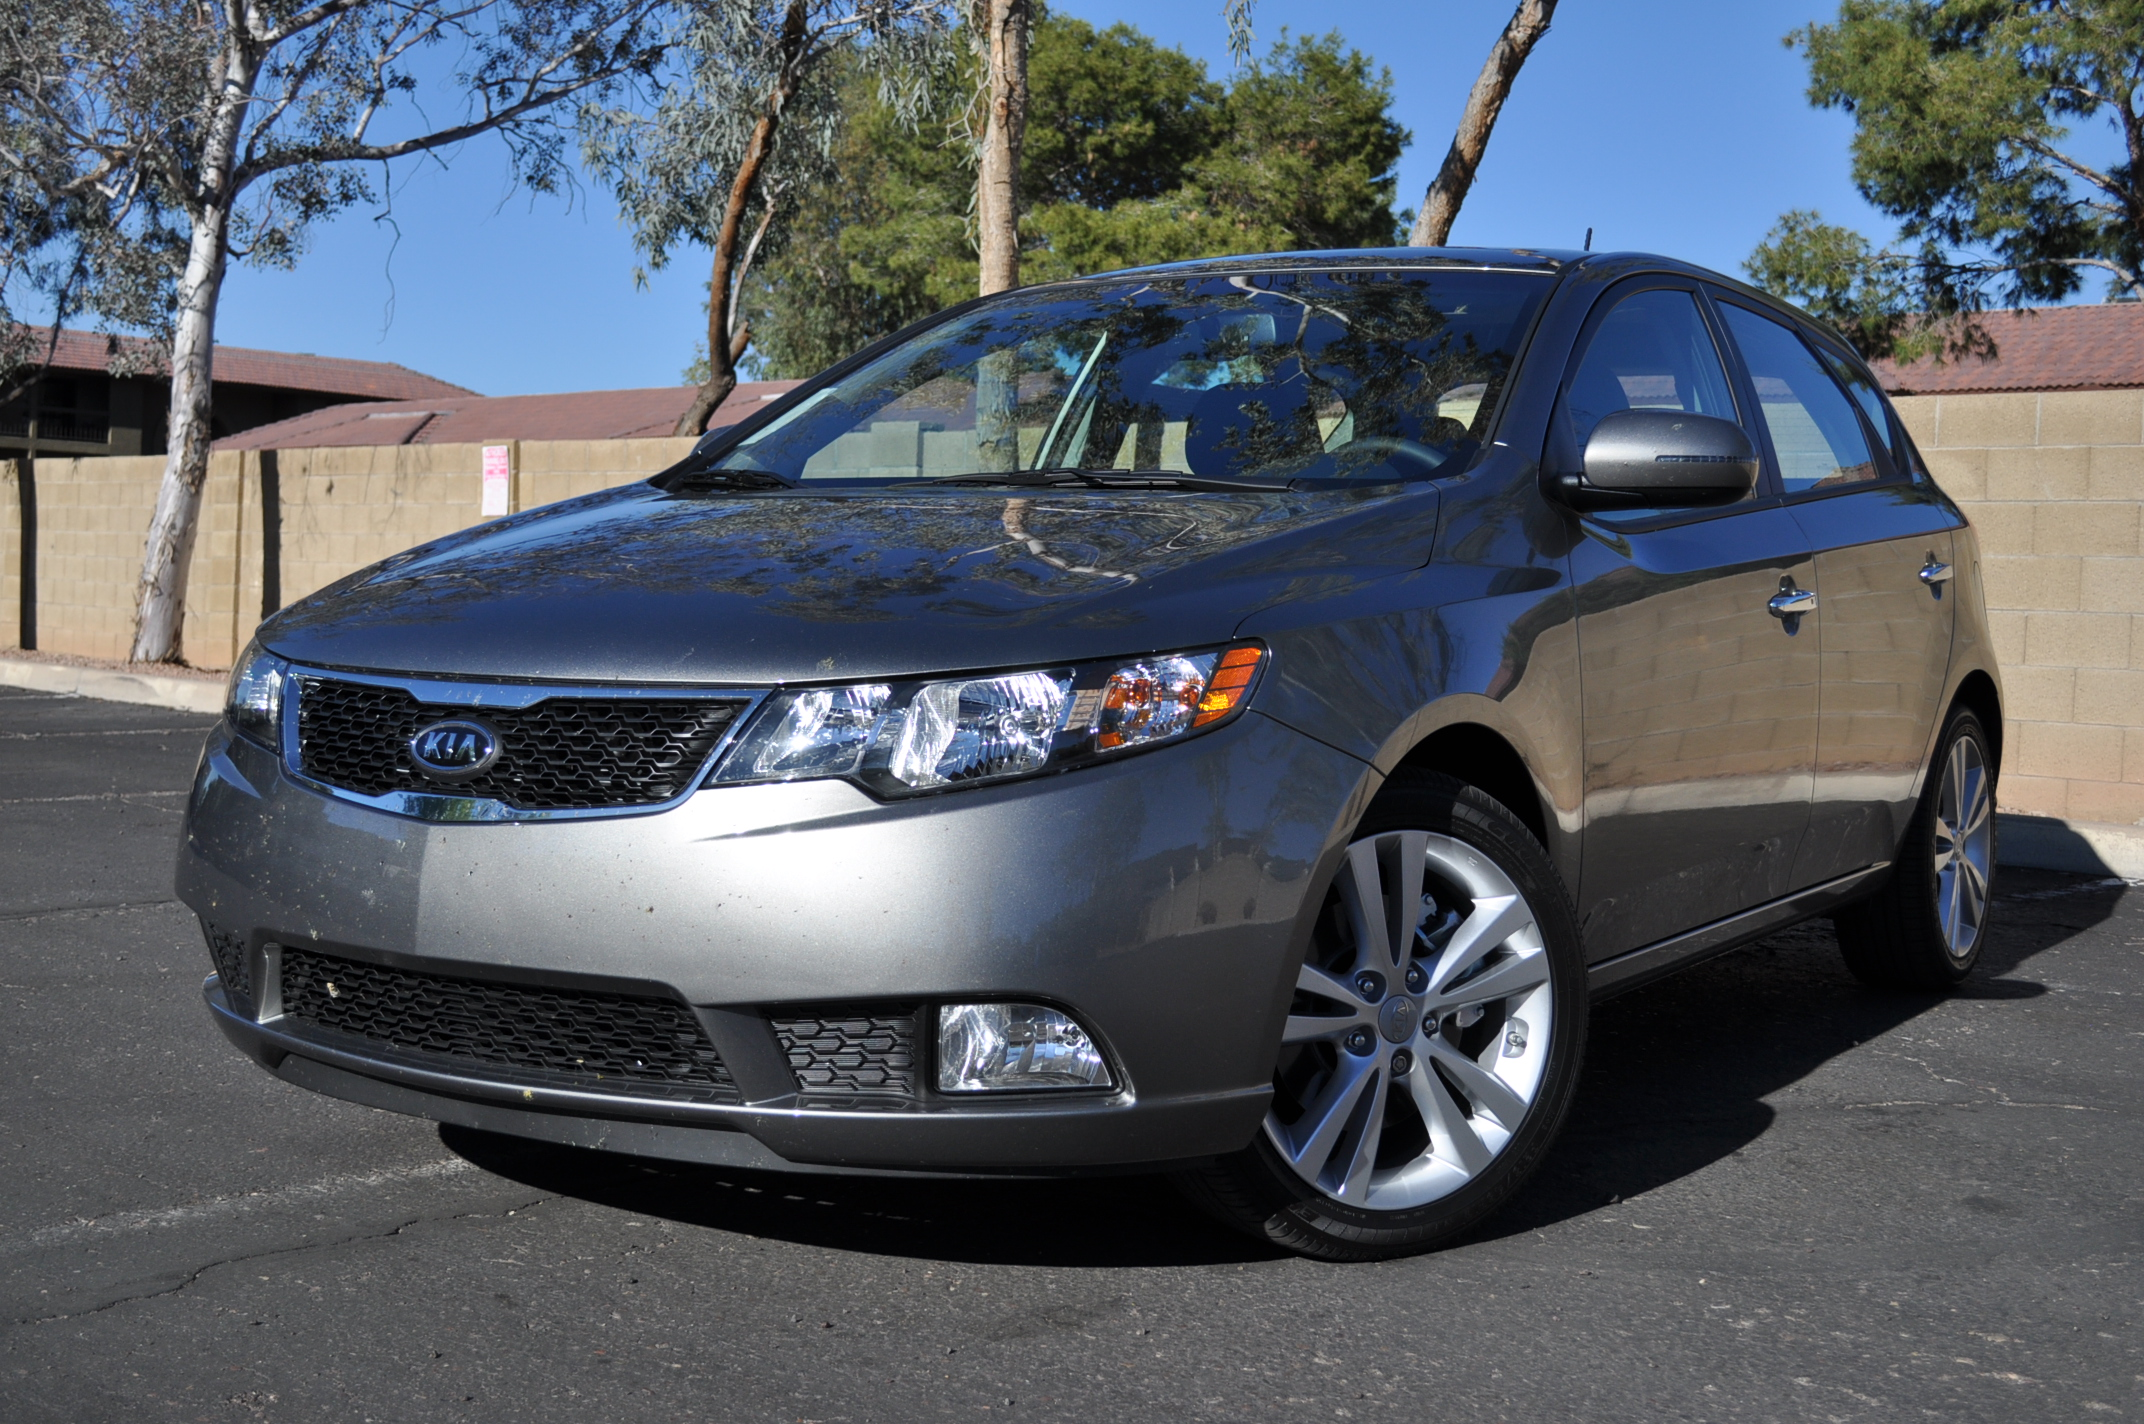 2011 Kia Forte 5 Door Sx First Drive